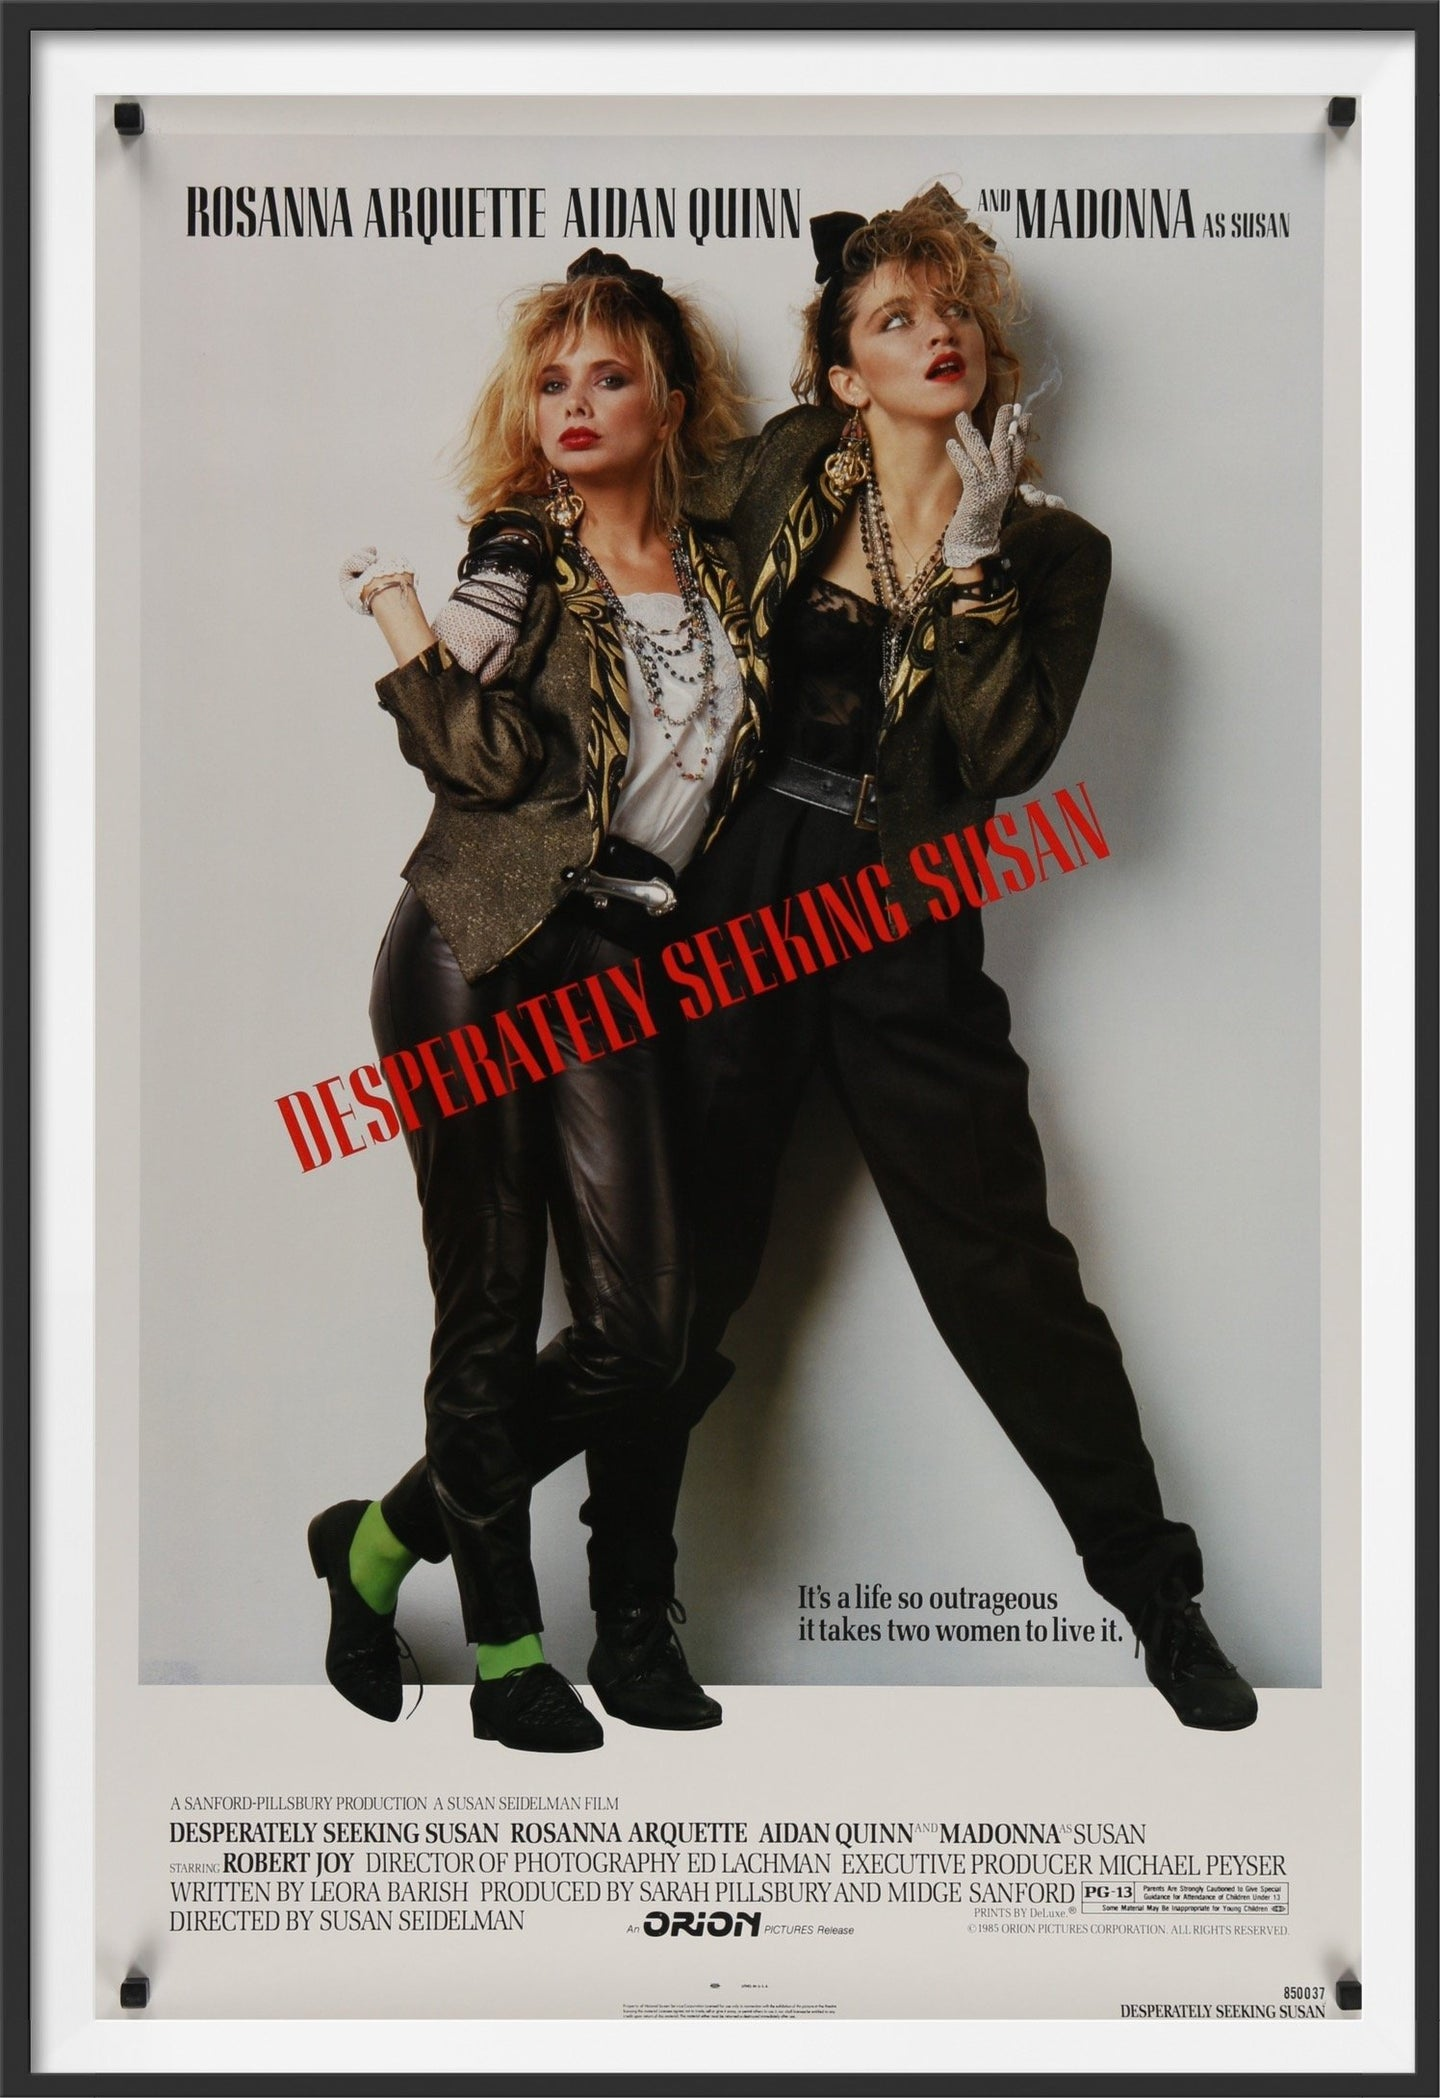 An original movie poster for the Madonna film Desperately Seeking Susan